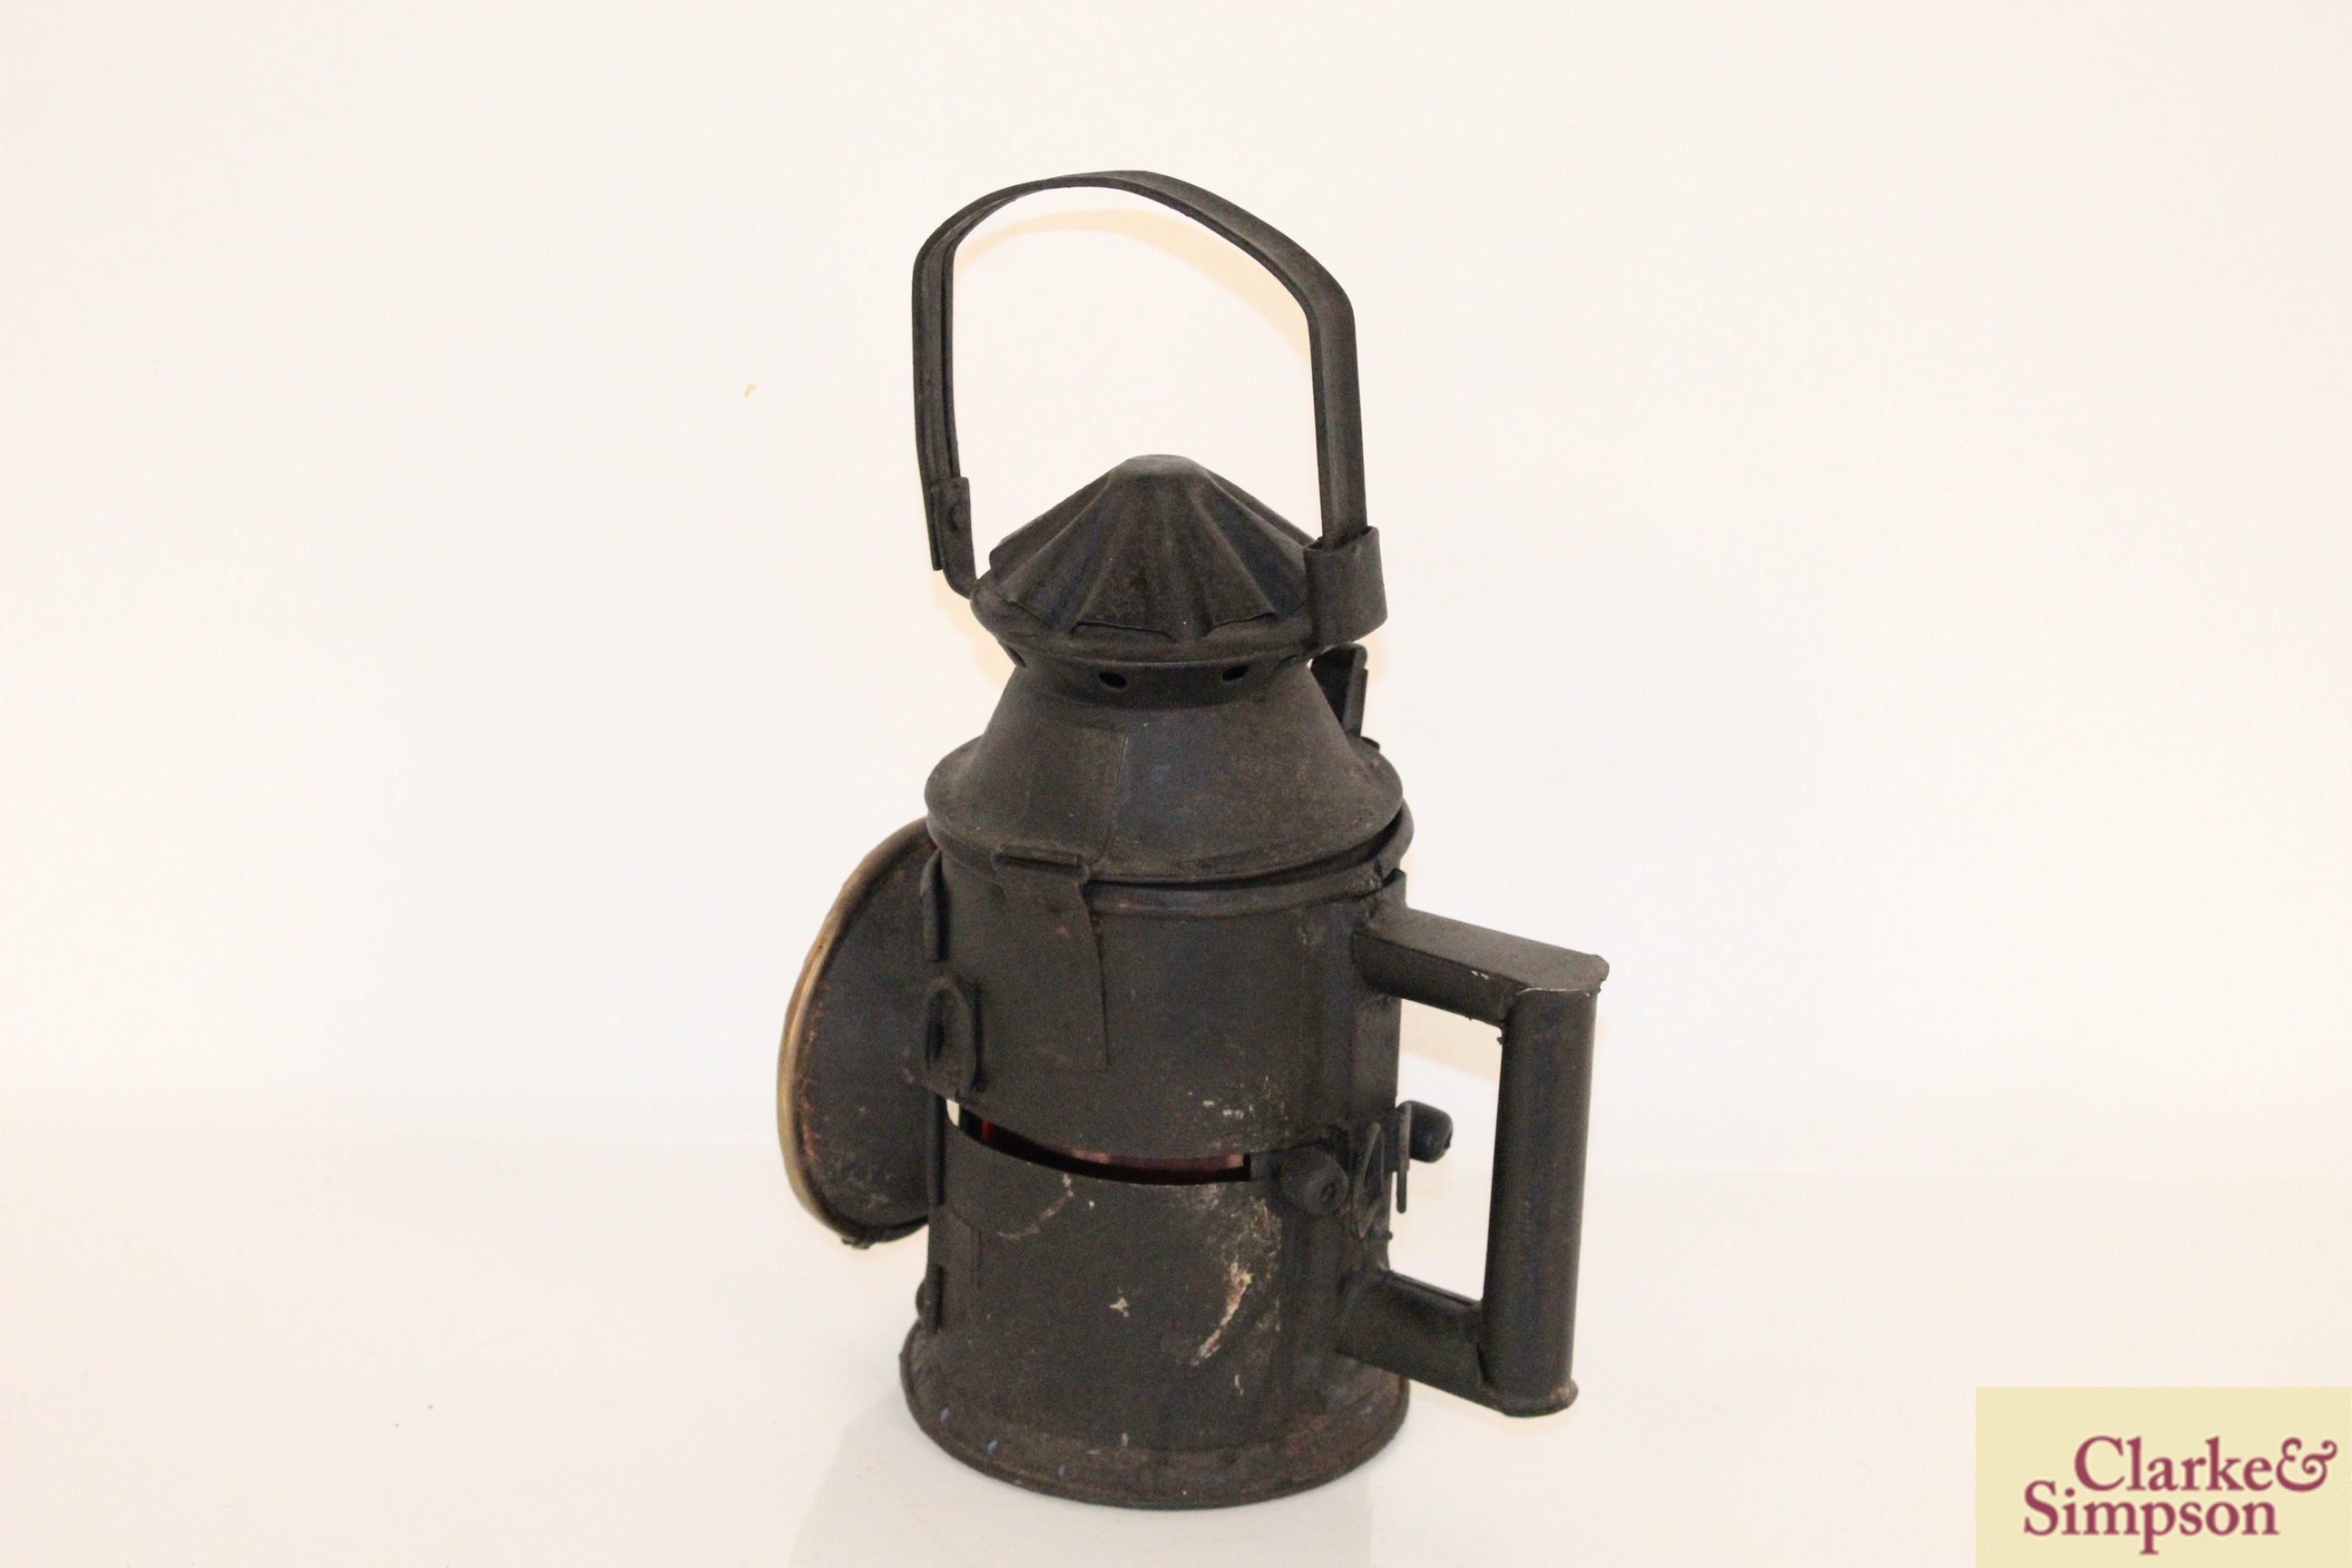 A vintage railway signal lamp - Image 2 of 5